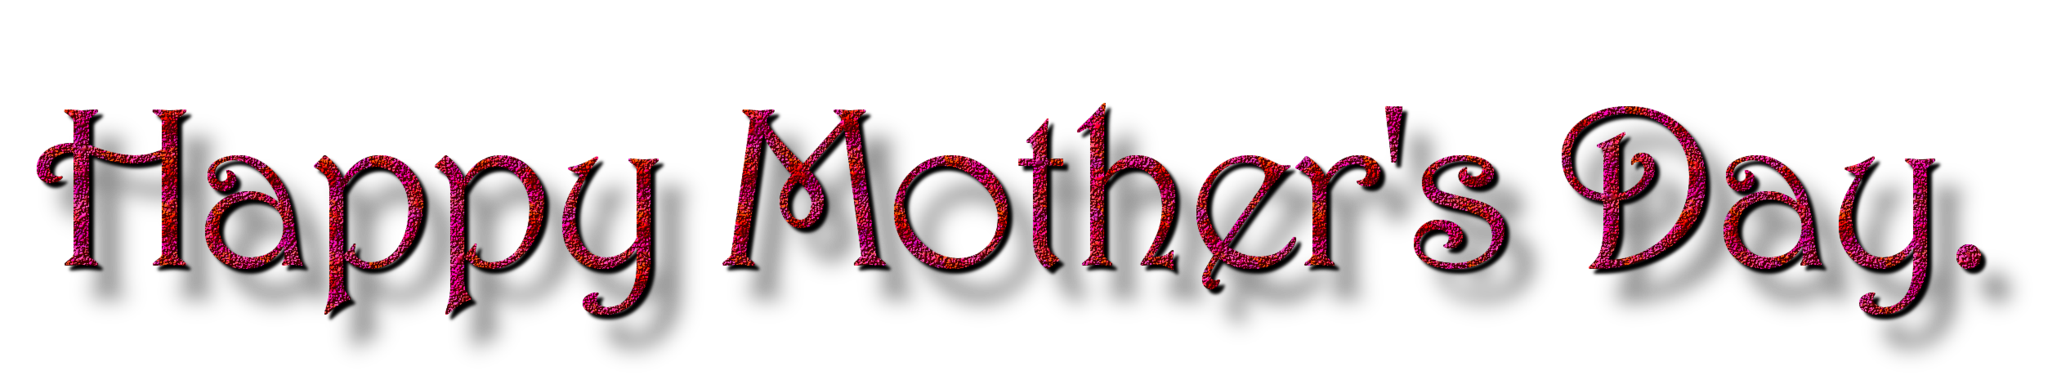 Free Best Images Mothers Day Clipart